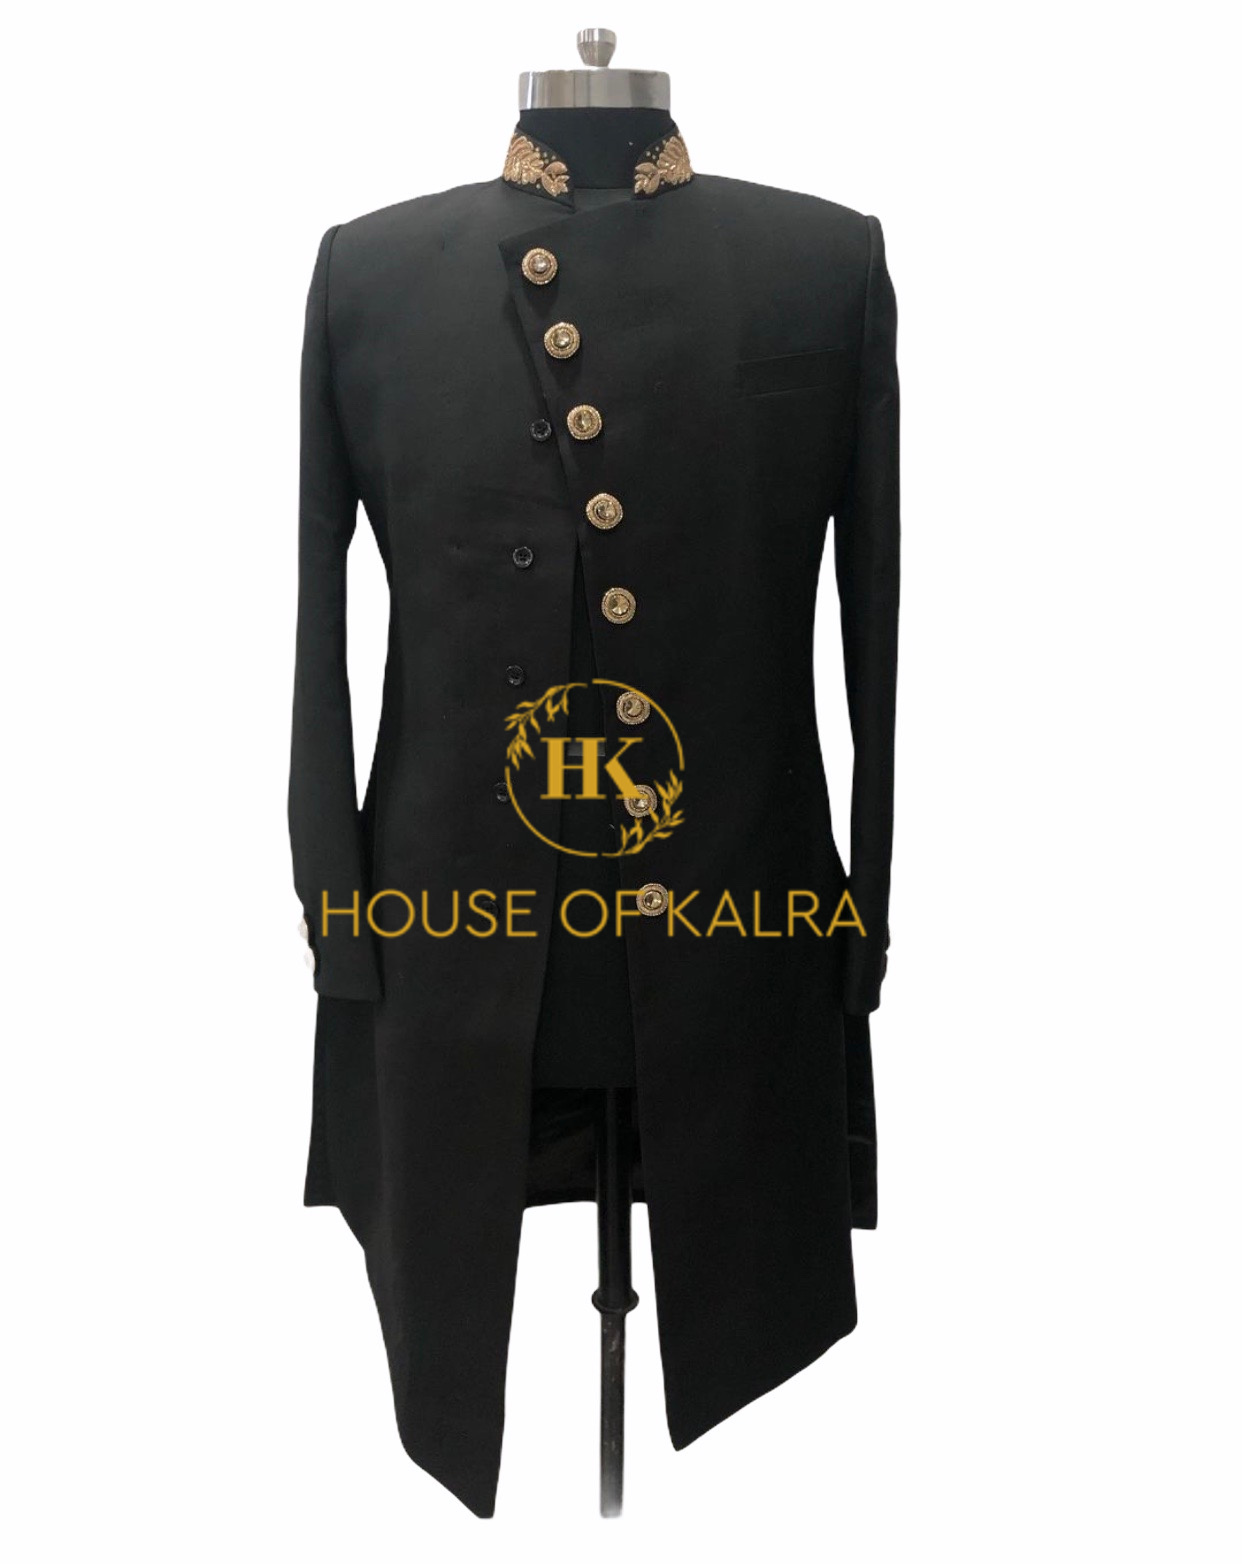 Wedding outfit for men at house of kalra